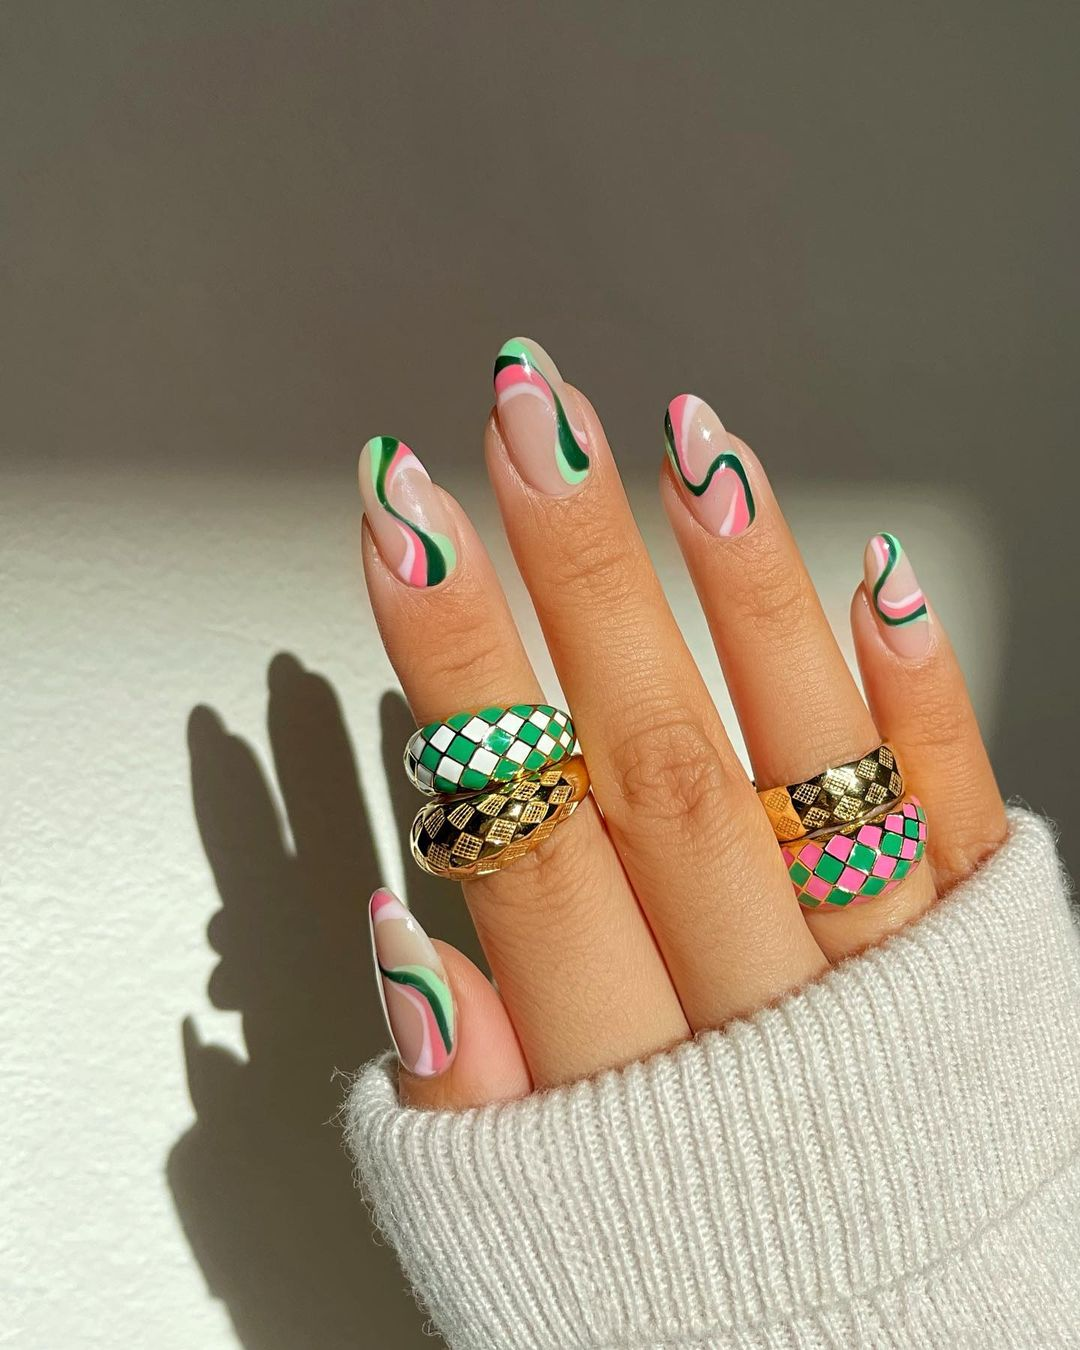 Psychedelic Nail Art is Taking Over This Summer - Summer 2021 Nail Art Beauty Trend